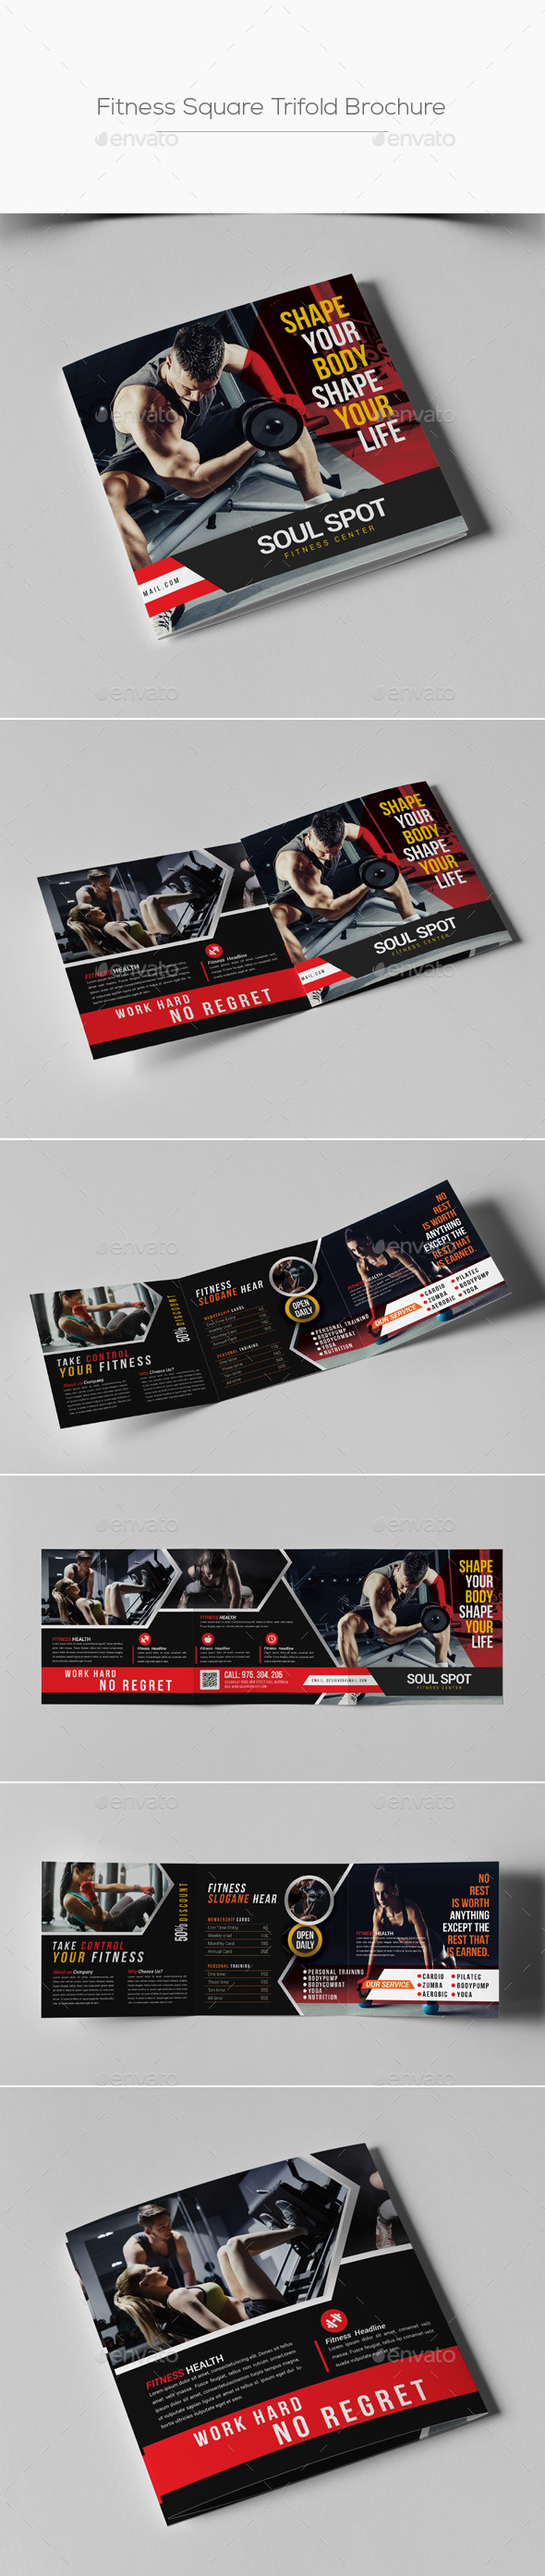 Fitness Square Trifold Brochure - Corporate Brochures